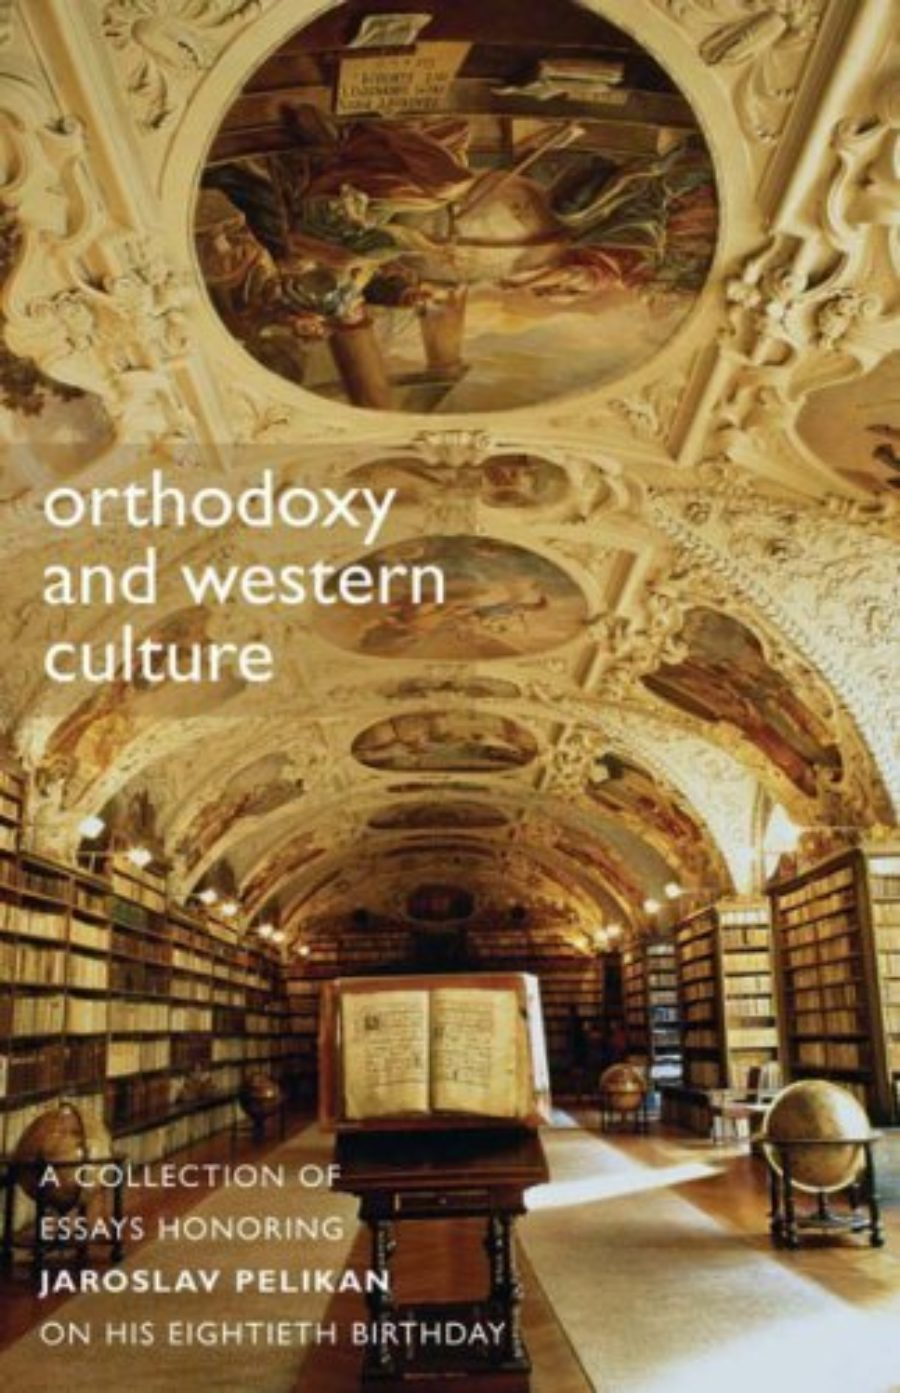 Cover of Orthodoxy And Western Culture: A Collection of Essays Honoring Jaroslav Pelikan on His Eightieth Birthday